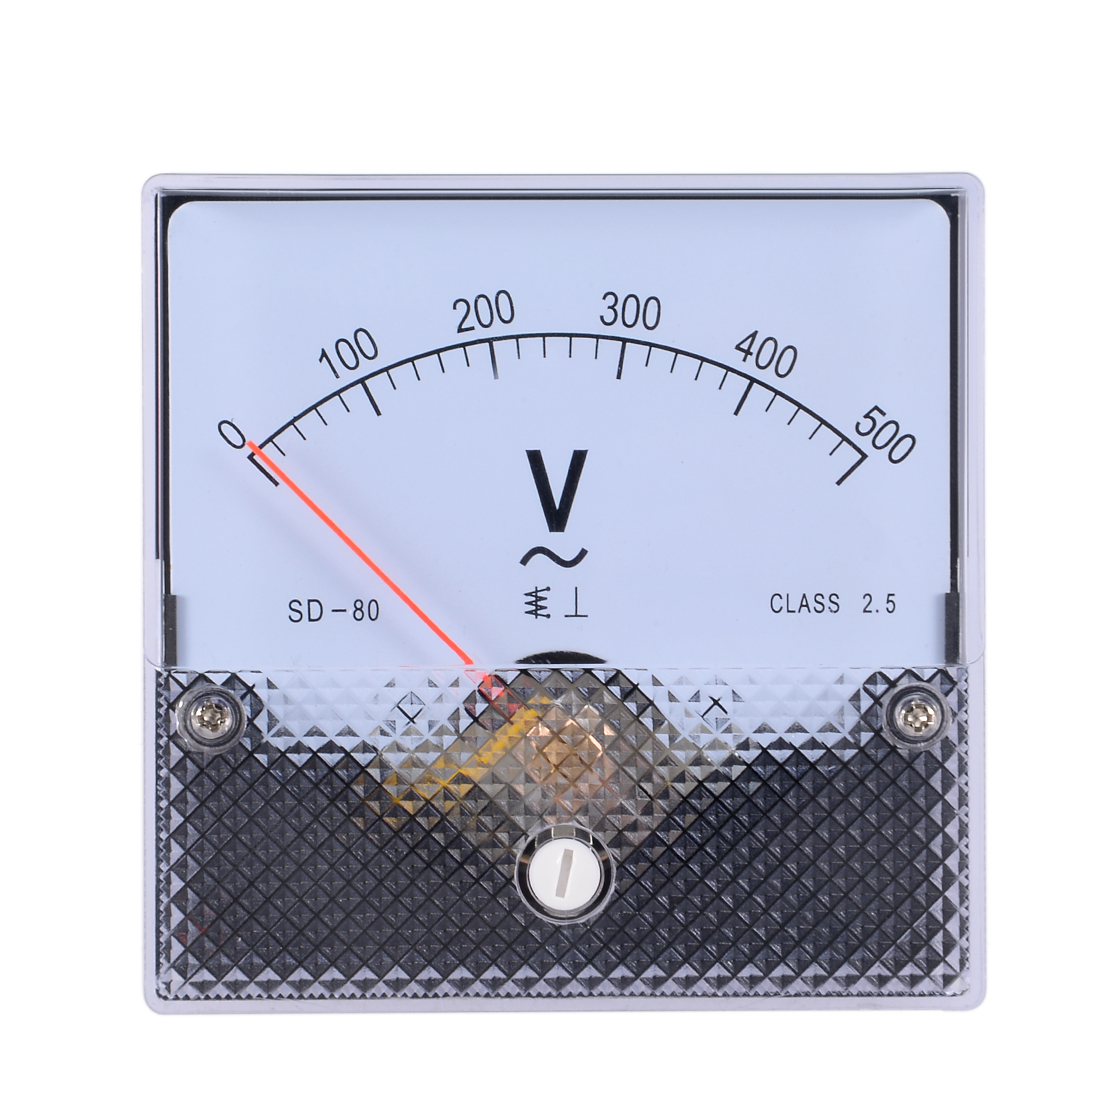 AC 0-500V Analog Panel Voltage Gauge Volt Meter CQ-80 2.5% Error Margin